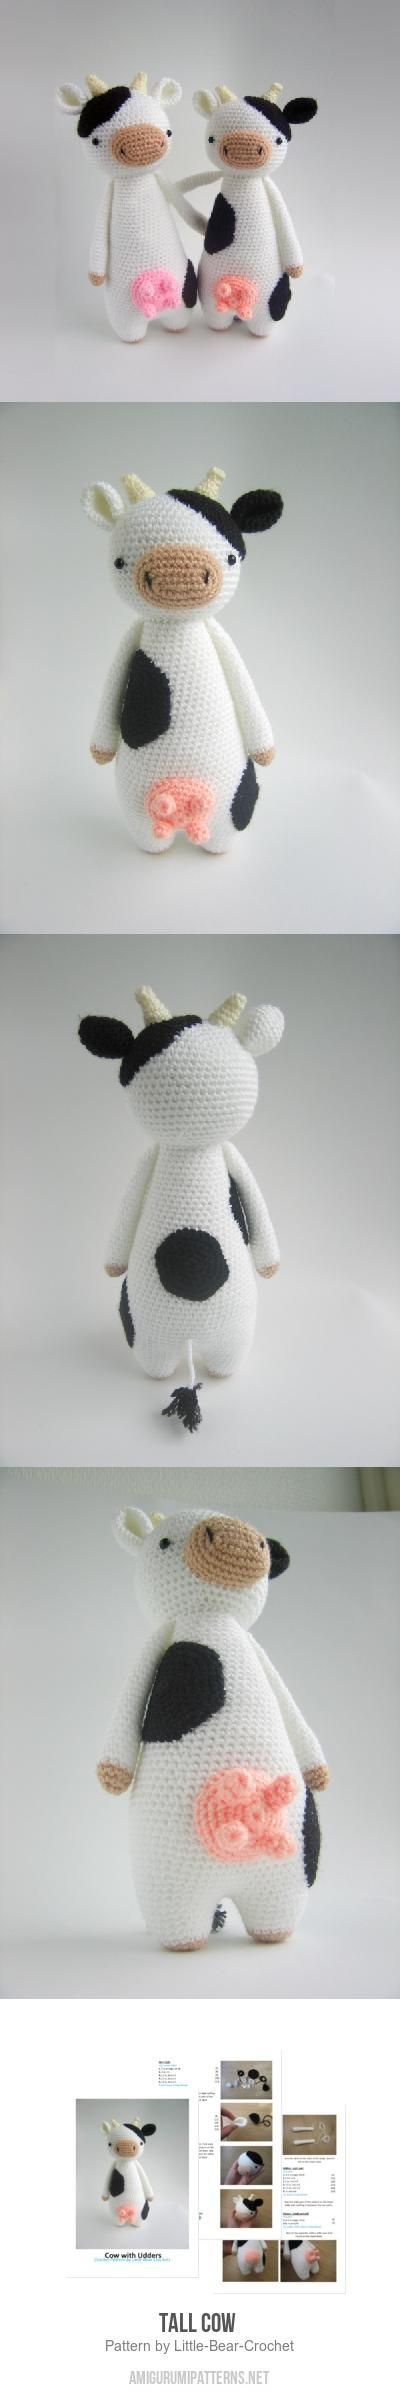 Tall Cow amigurumi pattern by Little Bear Crochet | ganchillo ...